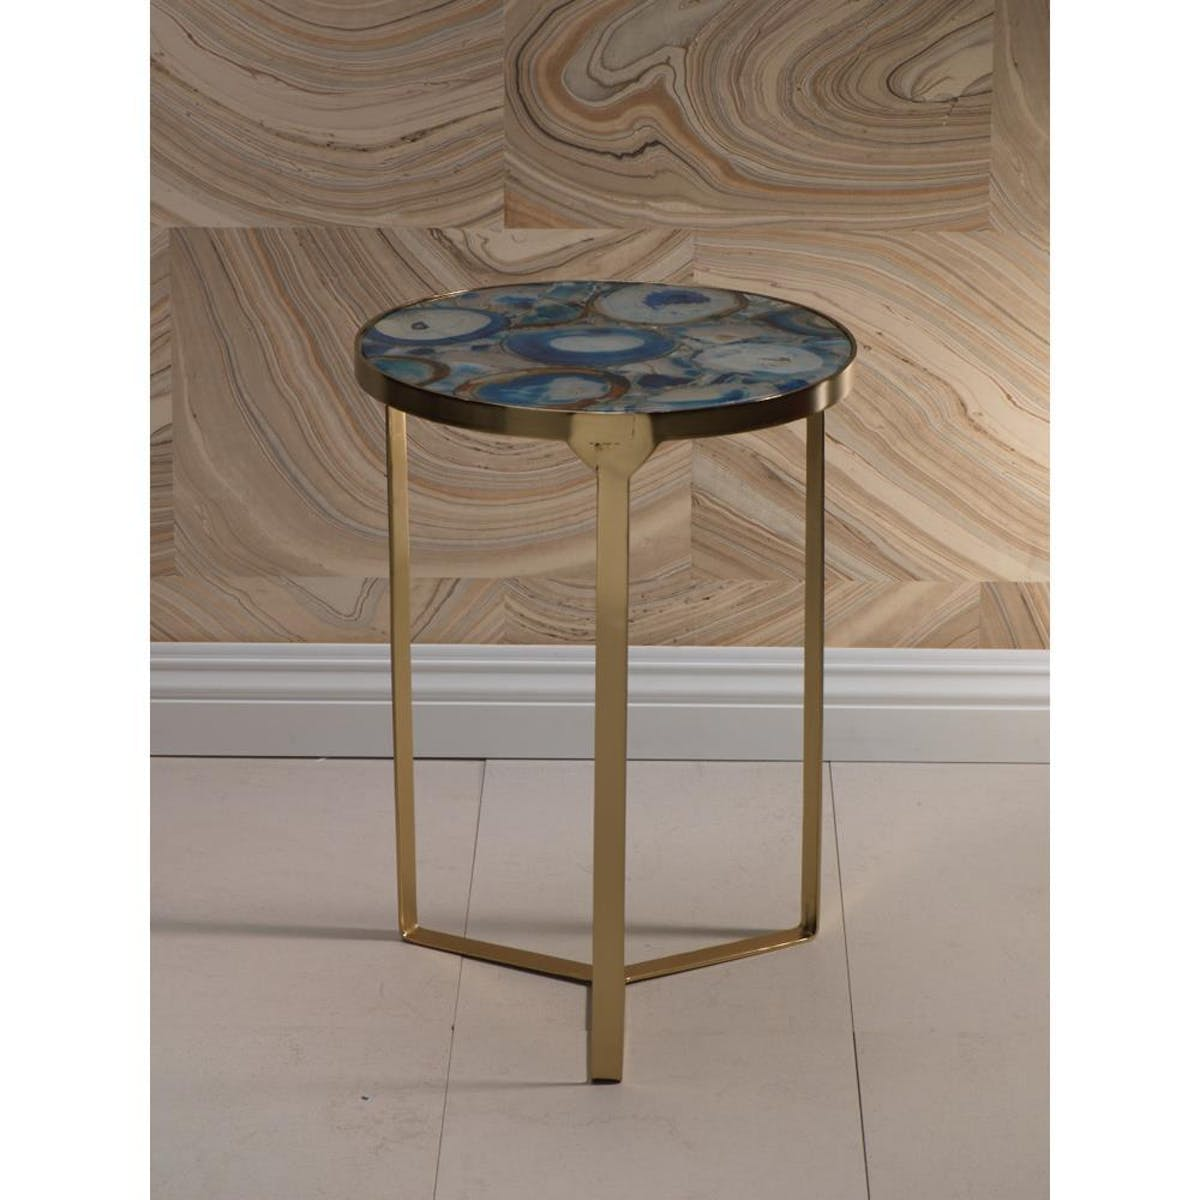 zodax inch high sardaigne blue agate end table modish accent small round white coffee black marble uttermost dice red wooden garden contemporary plexiglass cube turquoise pieces